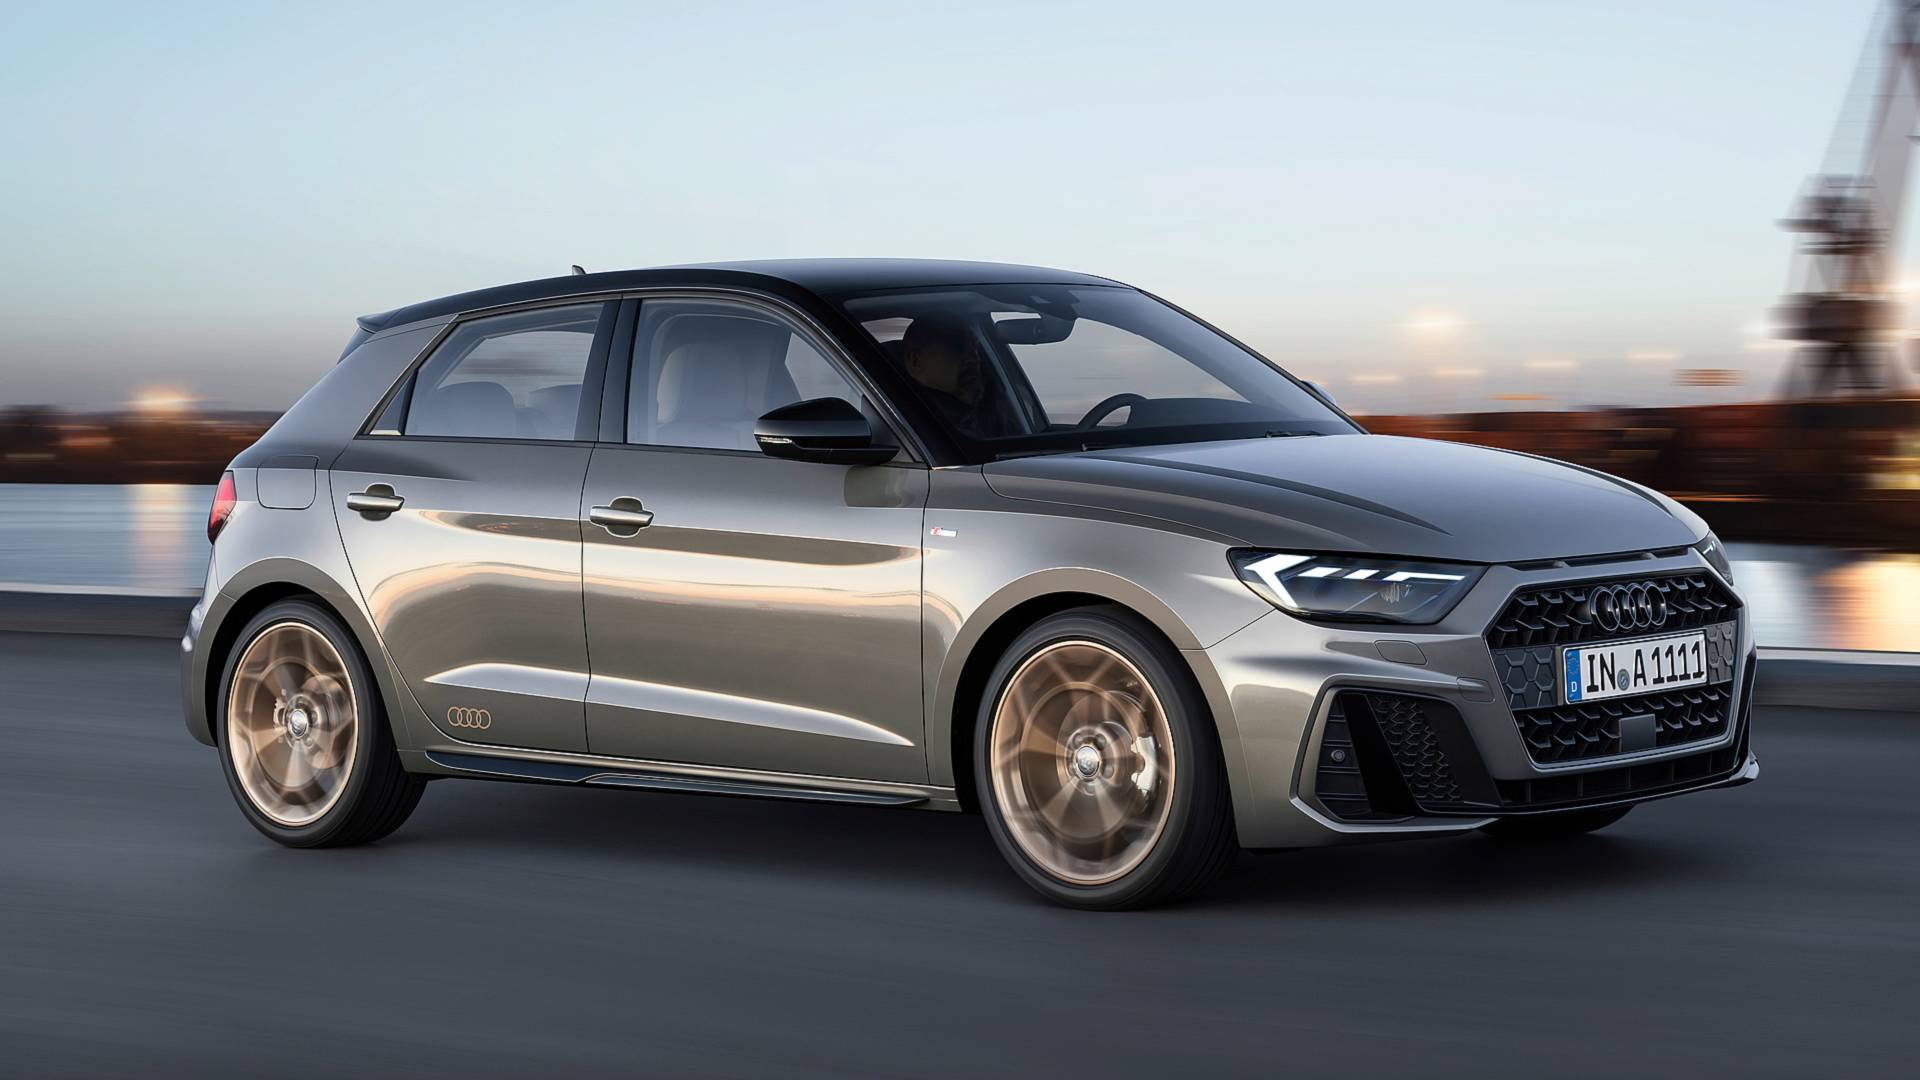 Audi A1 New Model >> 2019 Audi A1 Sportback Revealed, 40 TFSI Boasts 2.0-liter Engine With 200 PS - autoevolution